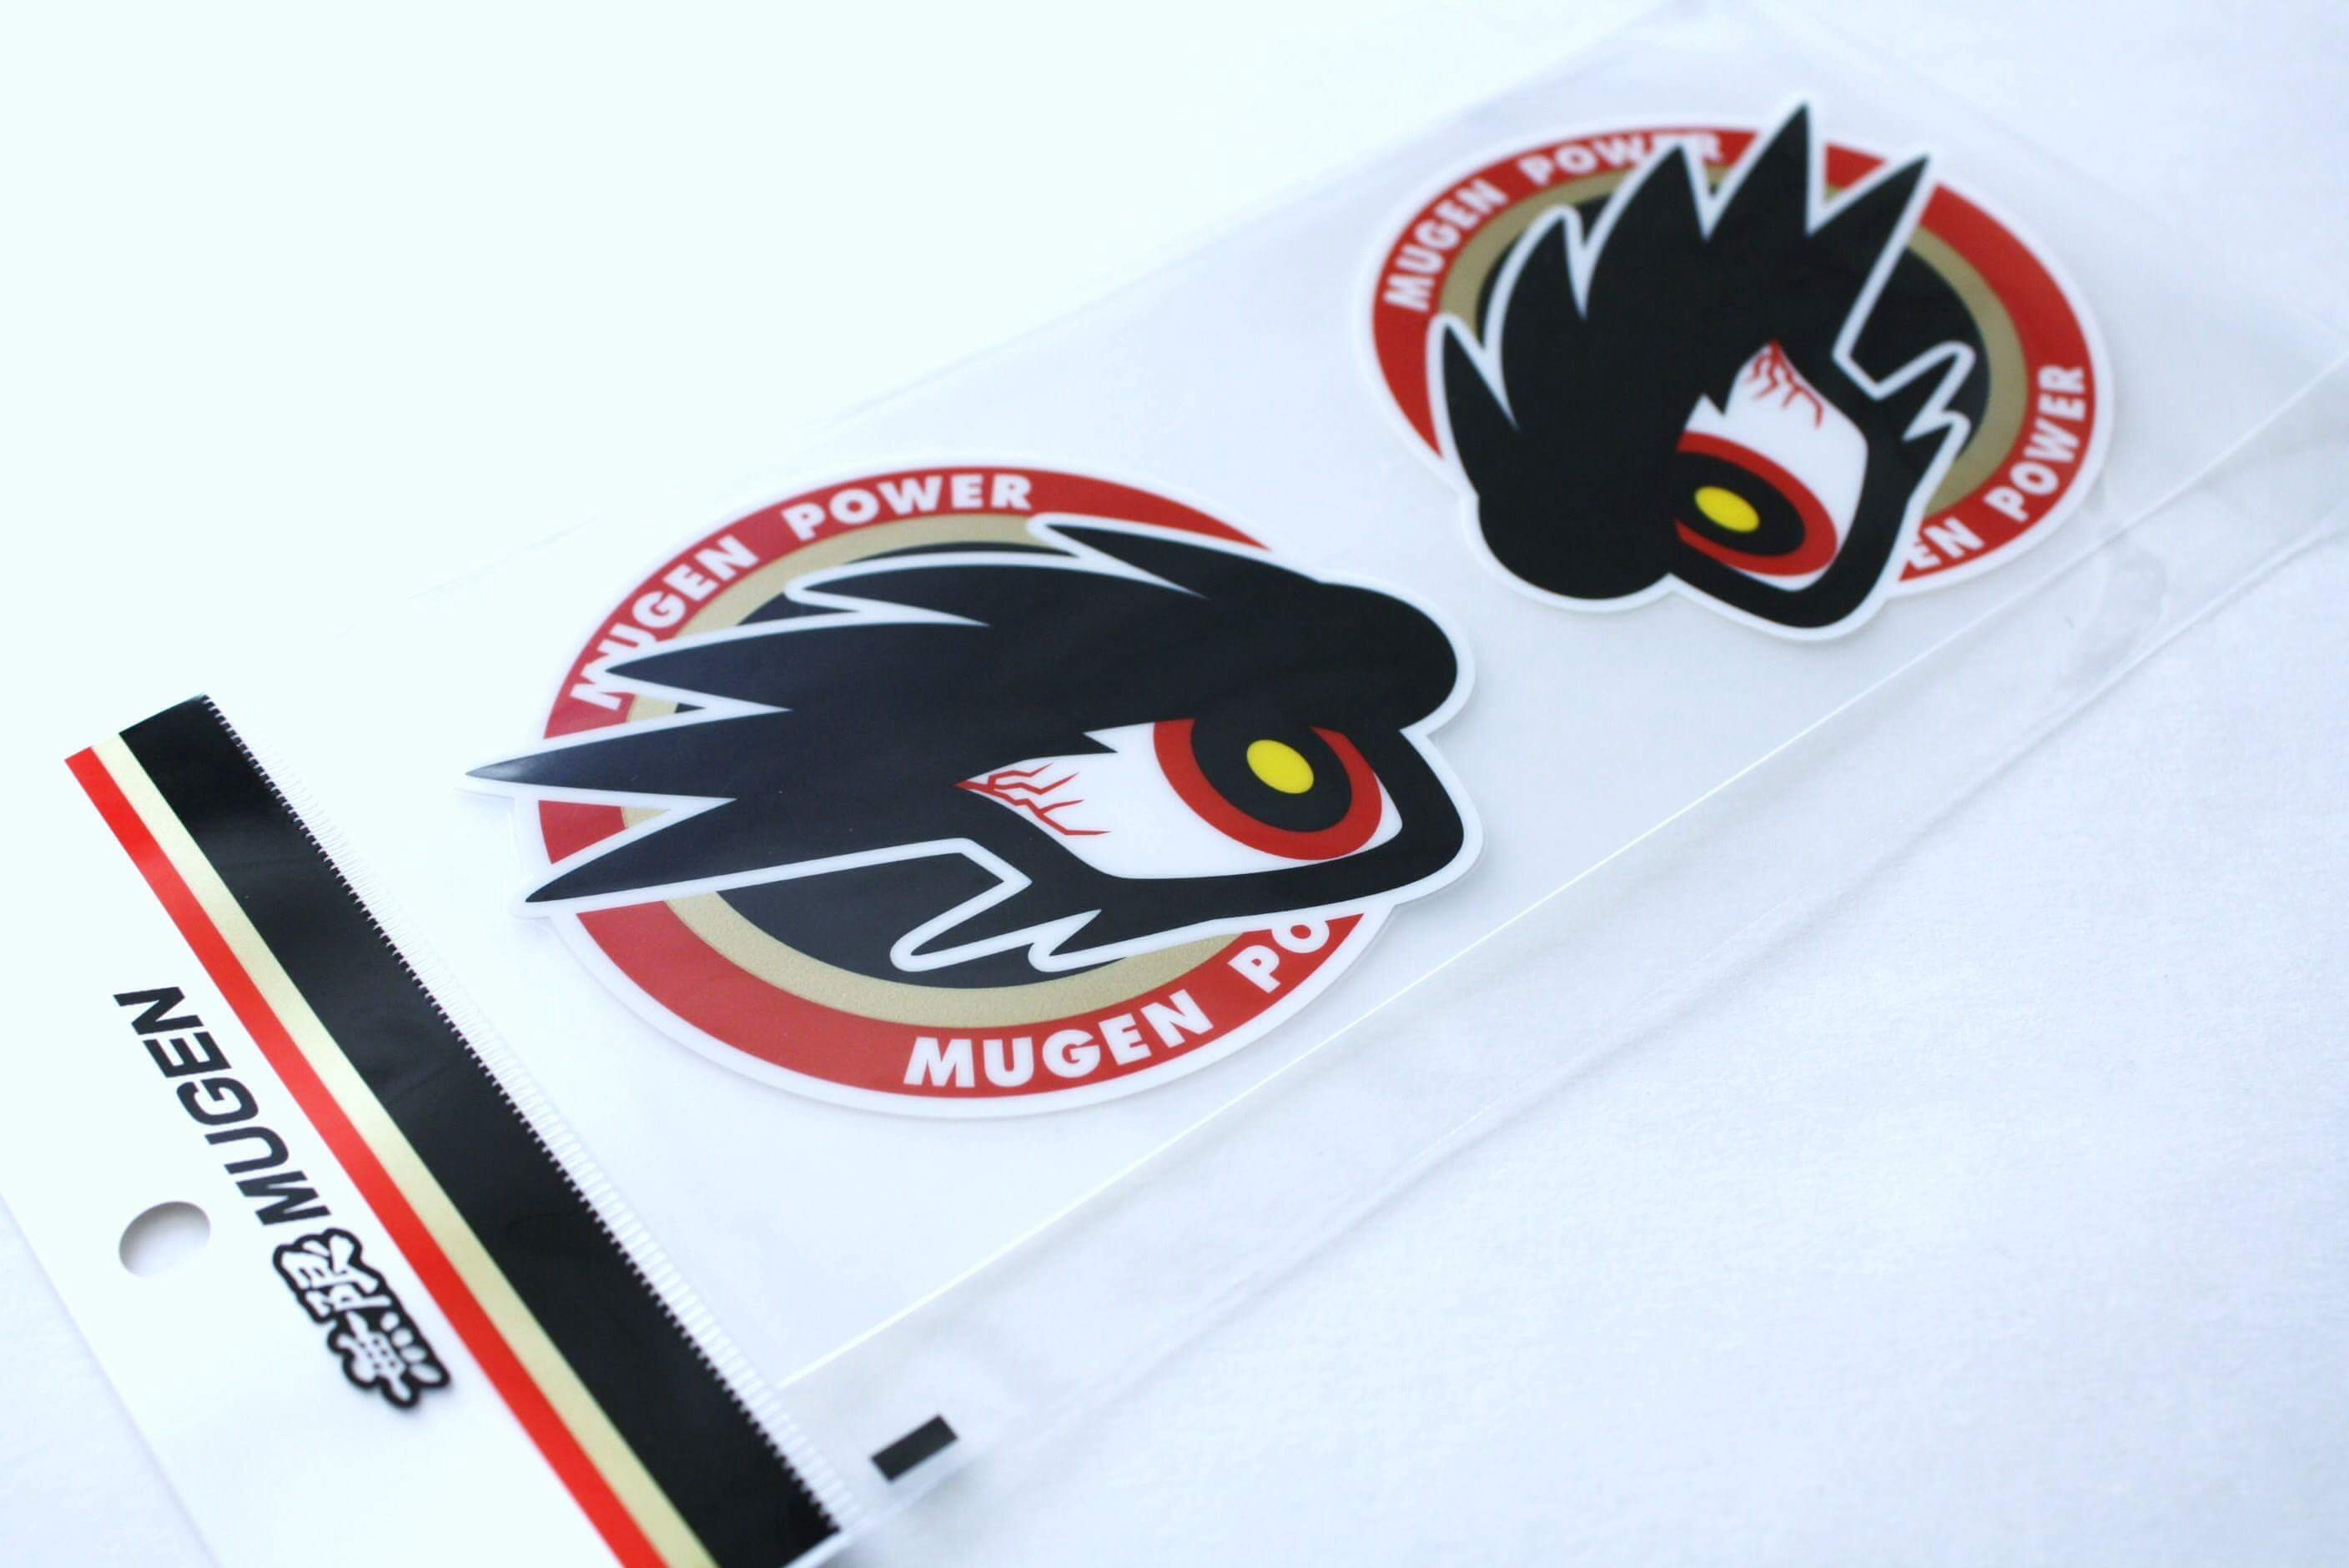 MUGEN Commander Eye Decal Set